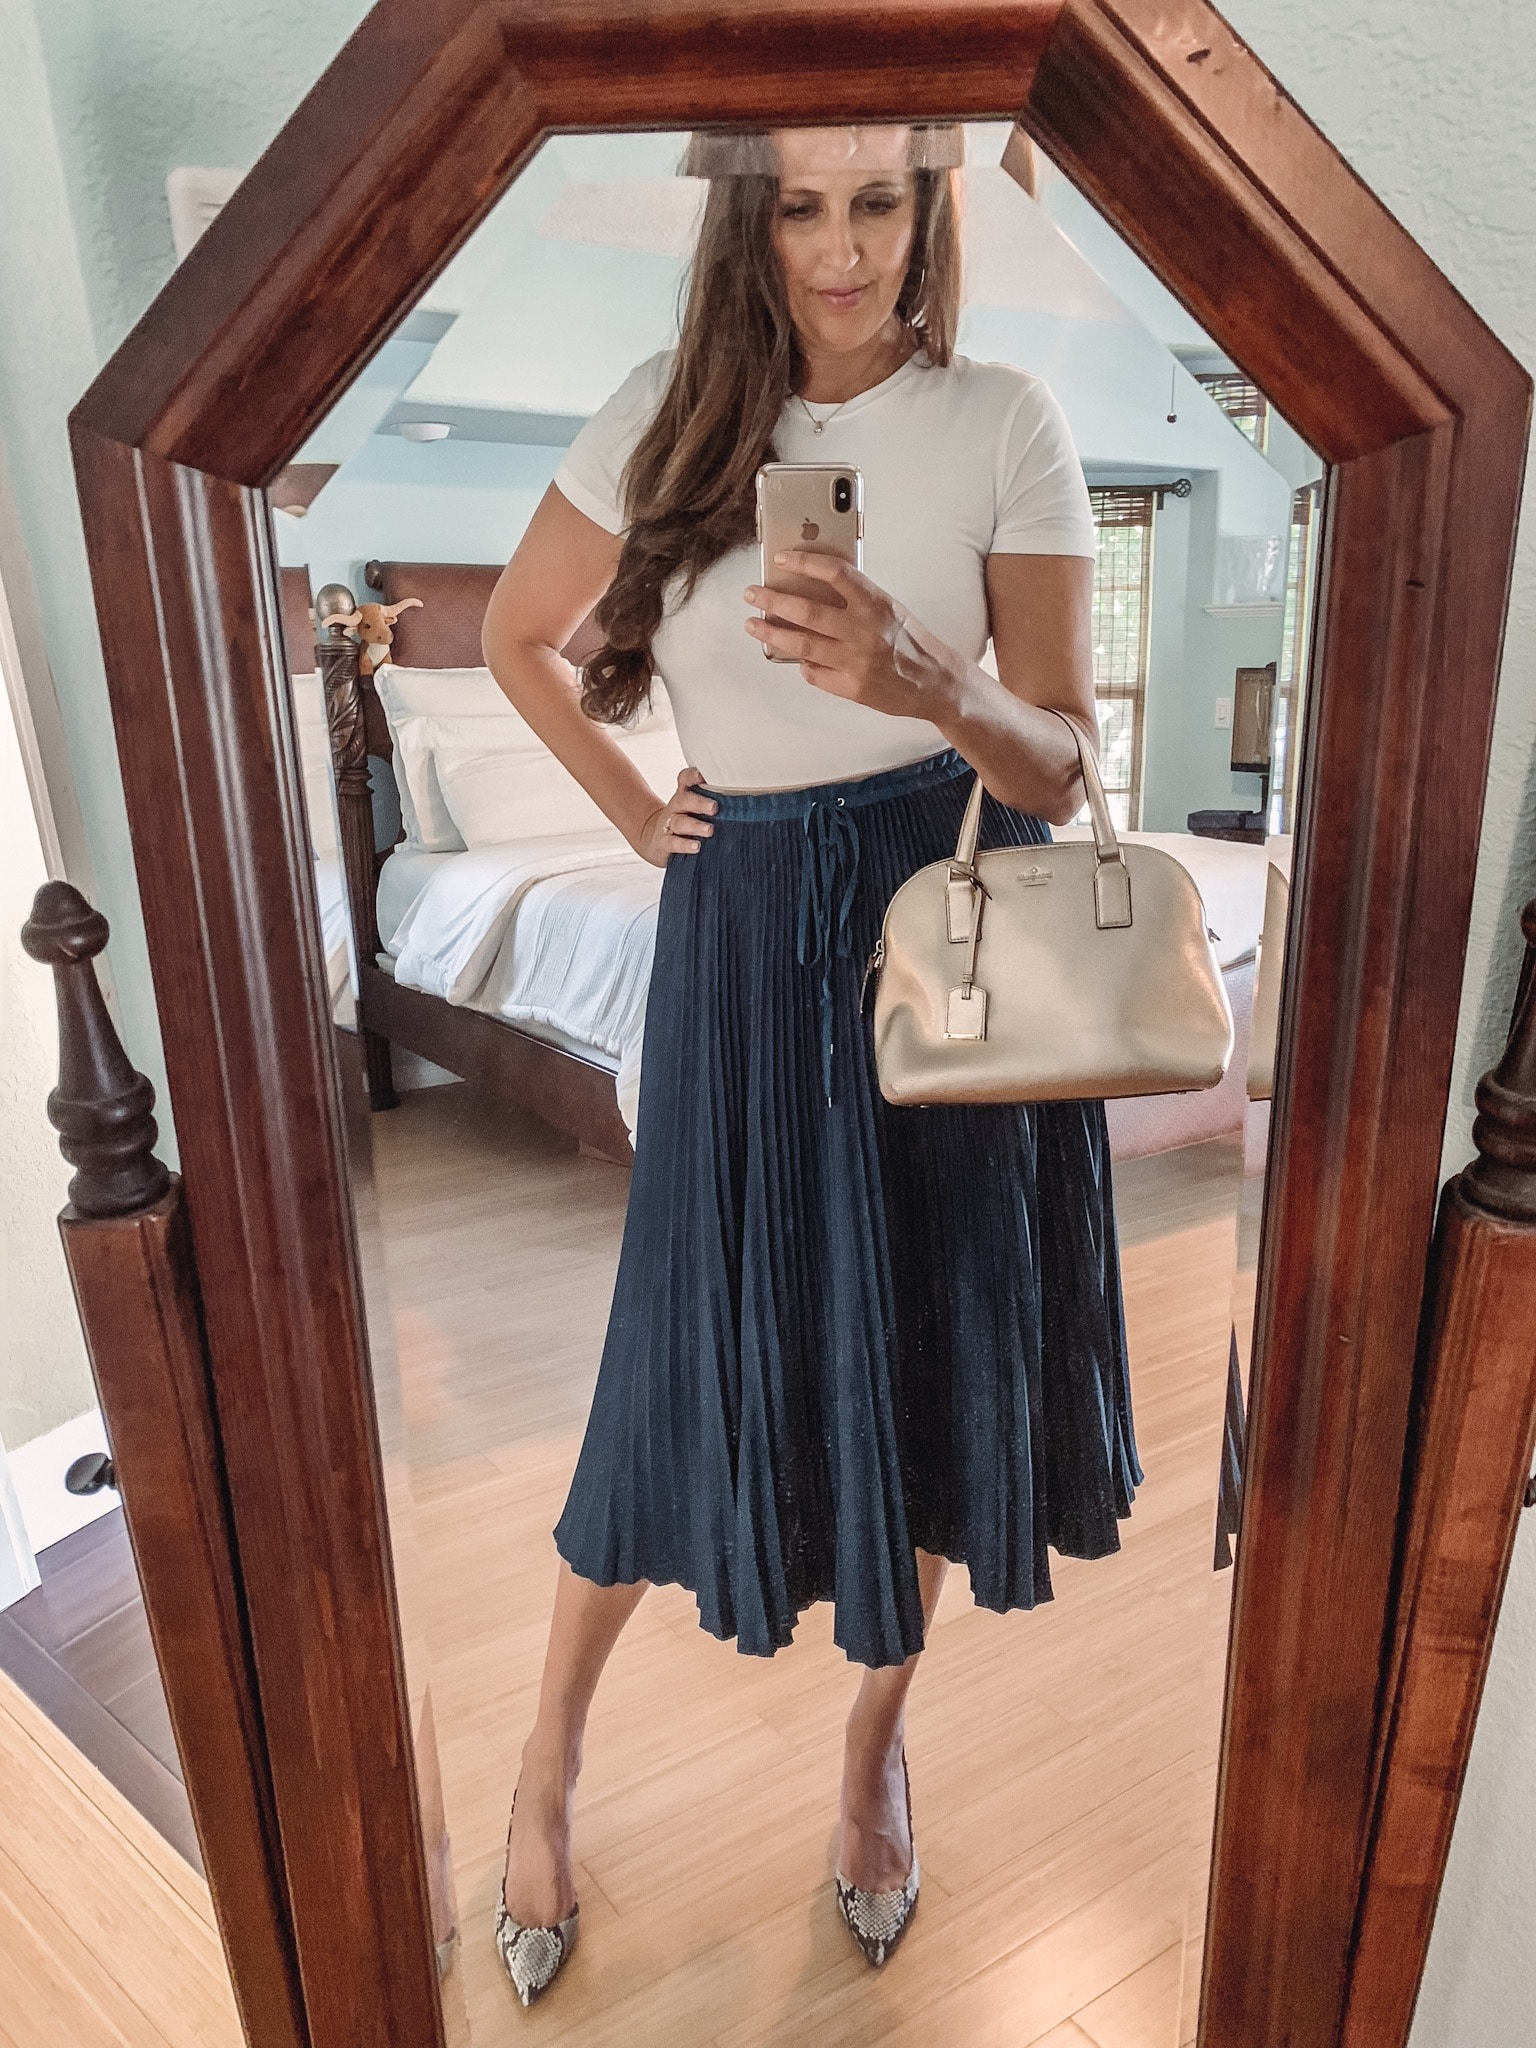 Pair your favorite white tee-shirt with a skirt.Don't have time to fuss over fashion? Why over-complicate your wardrobe with hard-to-match items? Here are 10 great ways to dress up a classic white t-shirt. #fashion #DIY #beauty #fashiontips #wardrobe #beautytips